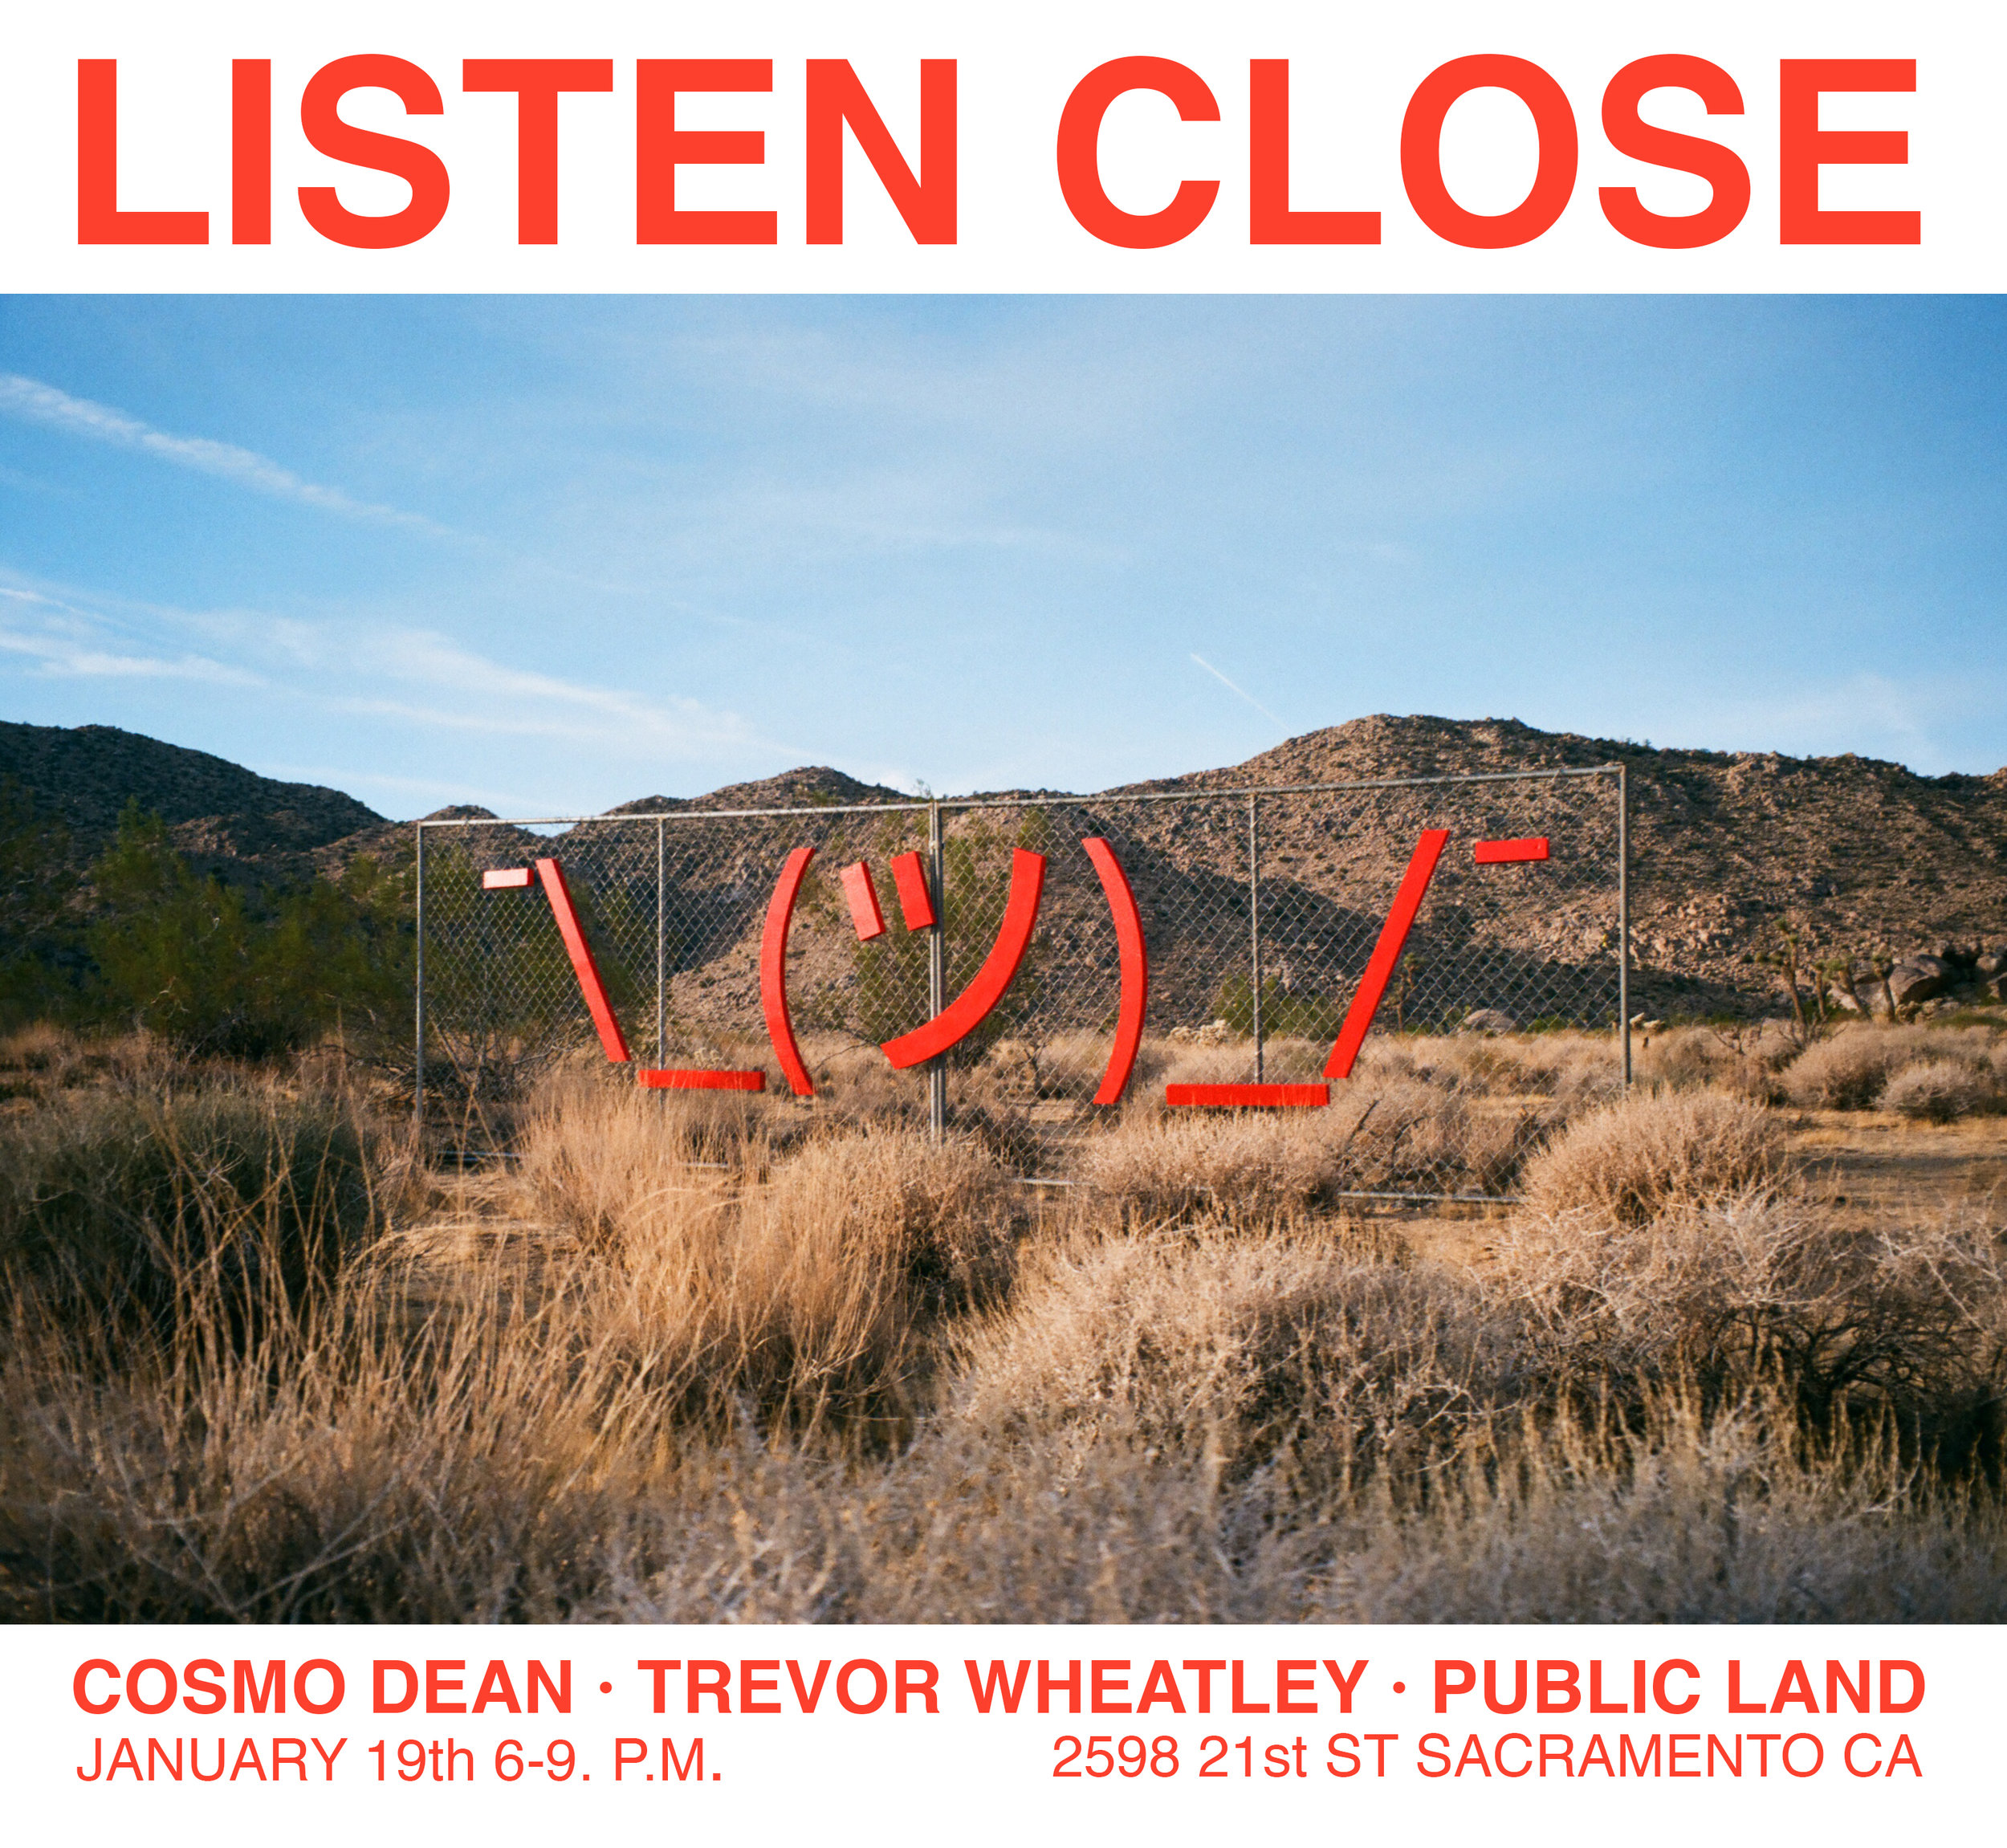 Trevor Wheatley and Cosmo Dean art exhibition at Public Land Gallery in Sacramento